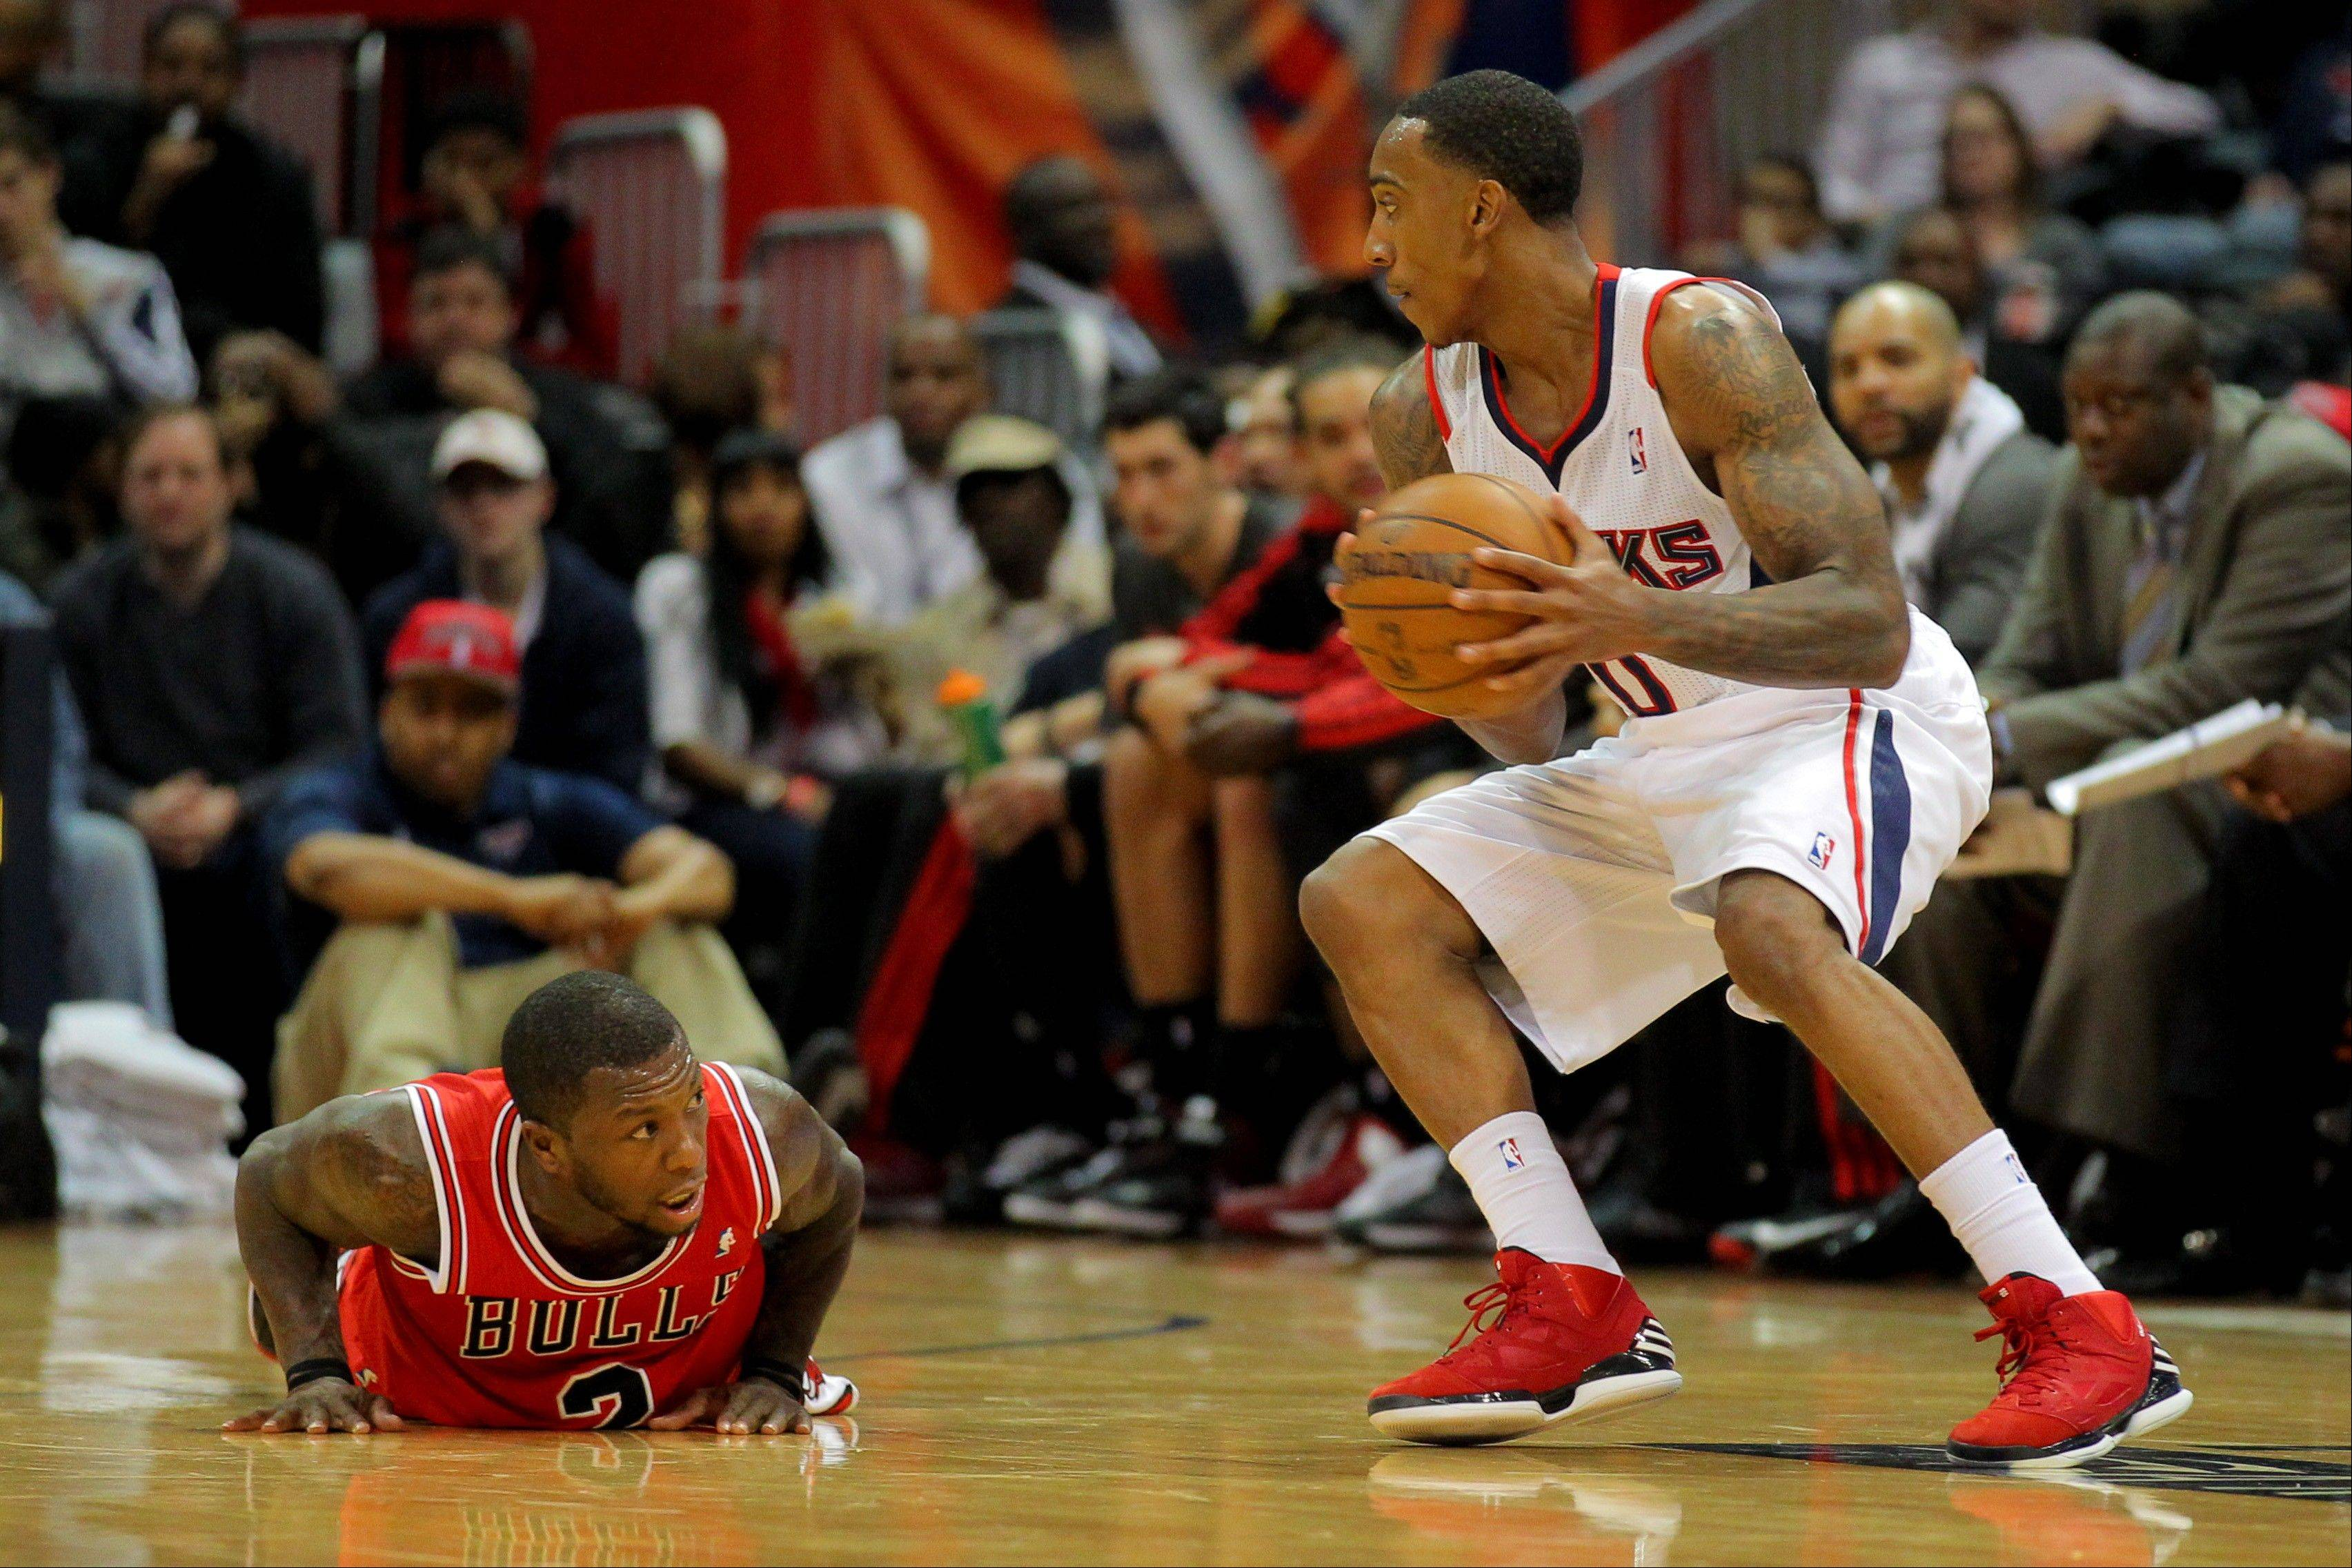 Chicago Bulls guard Nate Robinson (2) falls as Atlanta Hawks guard Jeff Teague (0) recovers the ball in the second half of an NBA basketball game, Saturday, Dec. 22, 2012, in Atlanta. The Hawks won 92-75